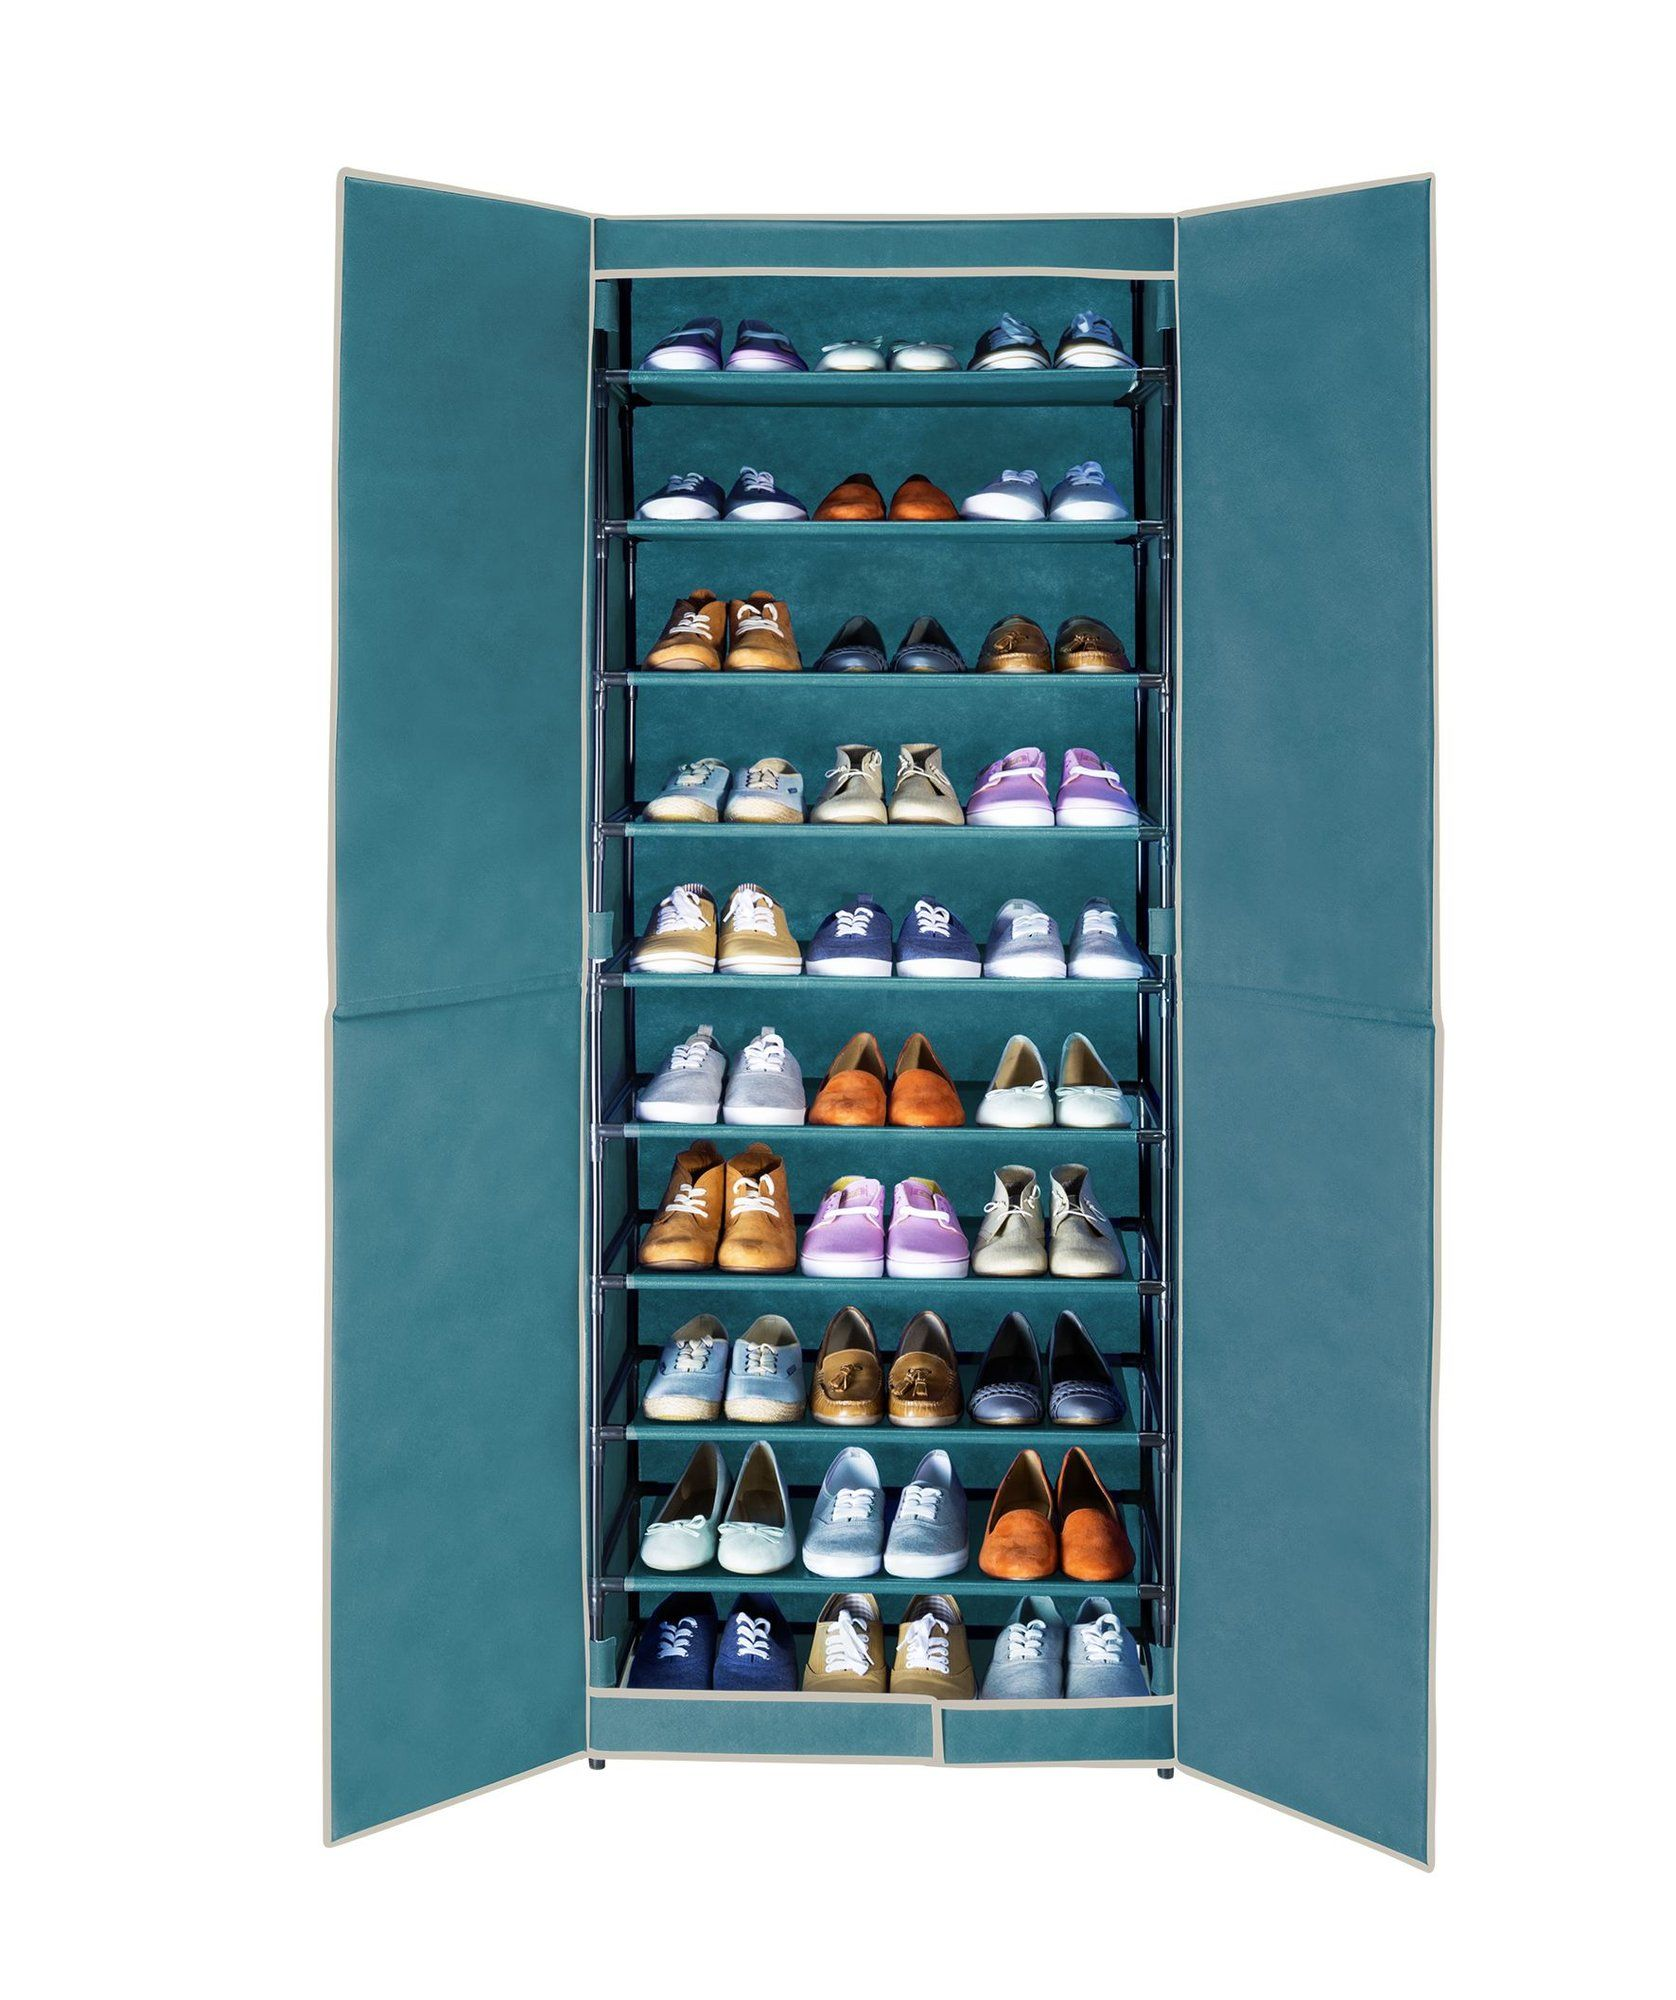 Rebrilliant Breeze 30 Pair Shoe Storage Cabinet Wayfair Co Uk Shoe Storage Accessories Shoe Storage Cabinet Shoe Storage